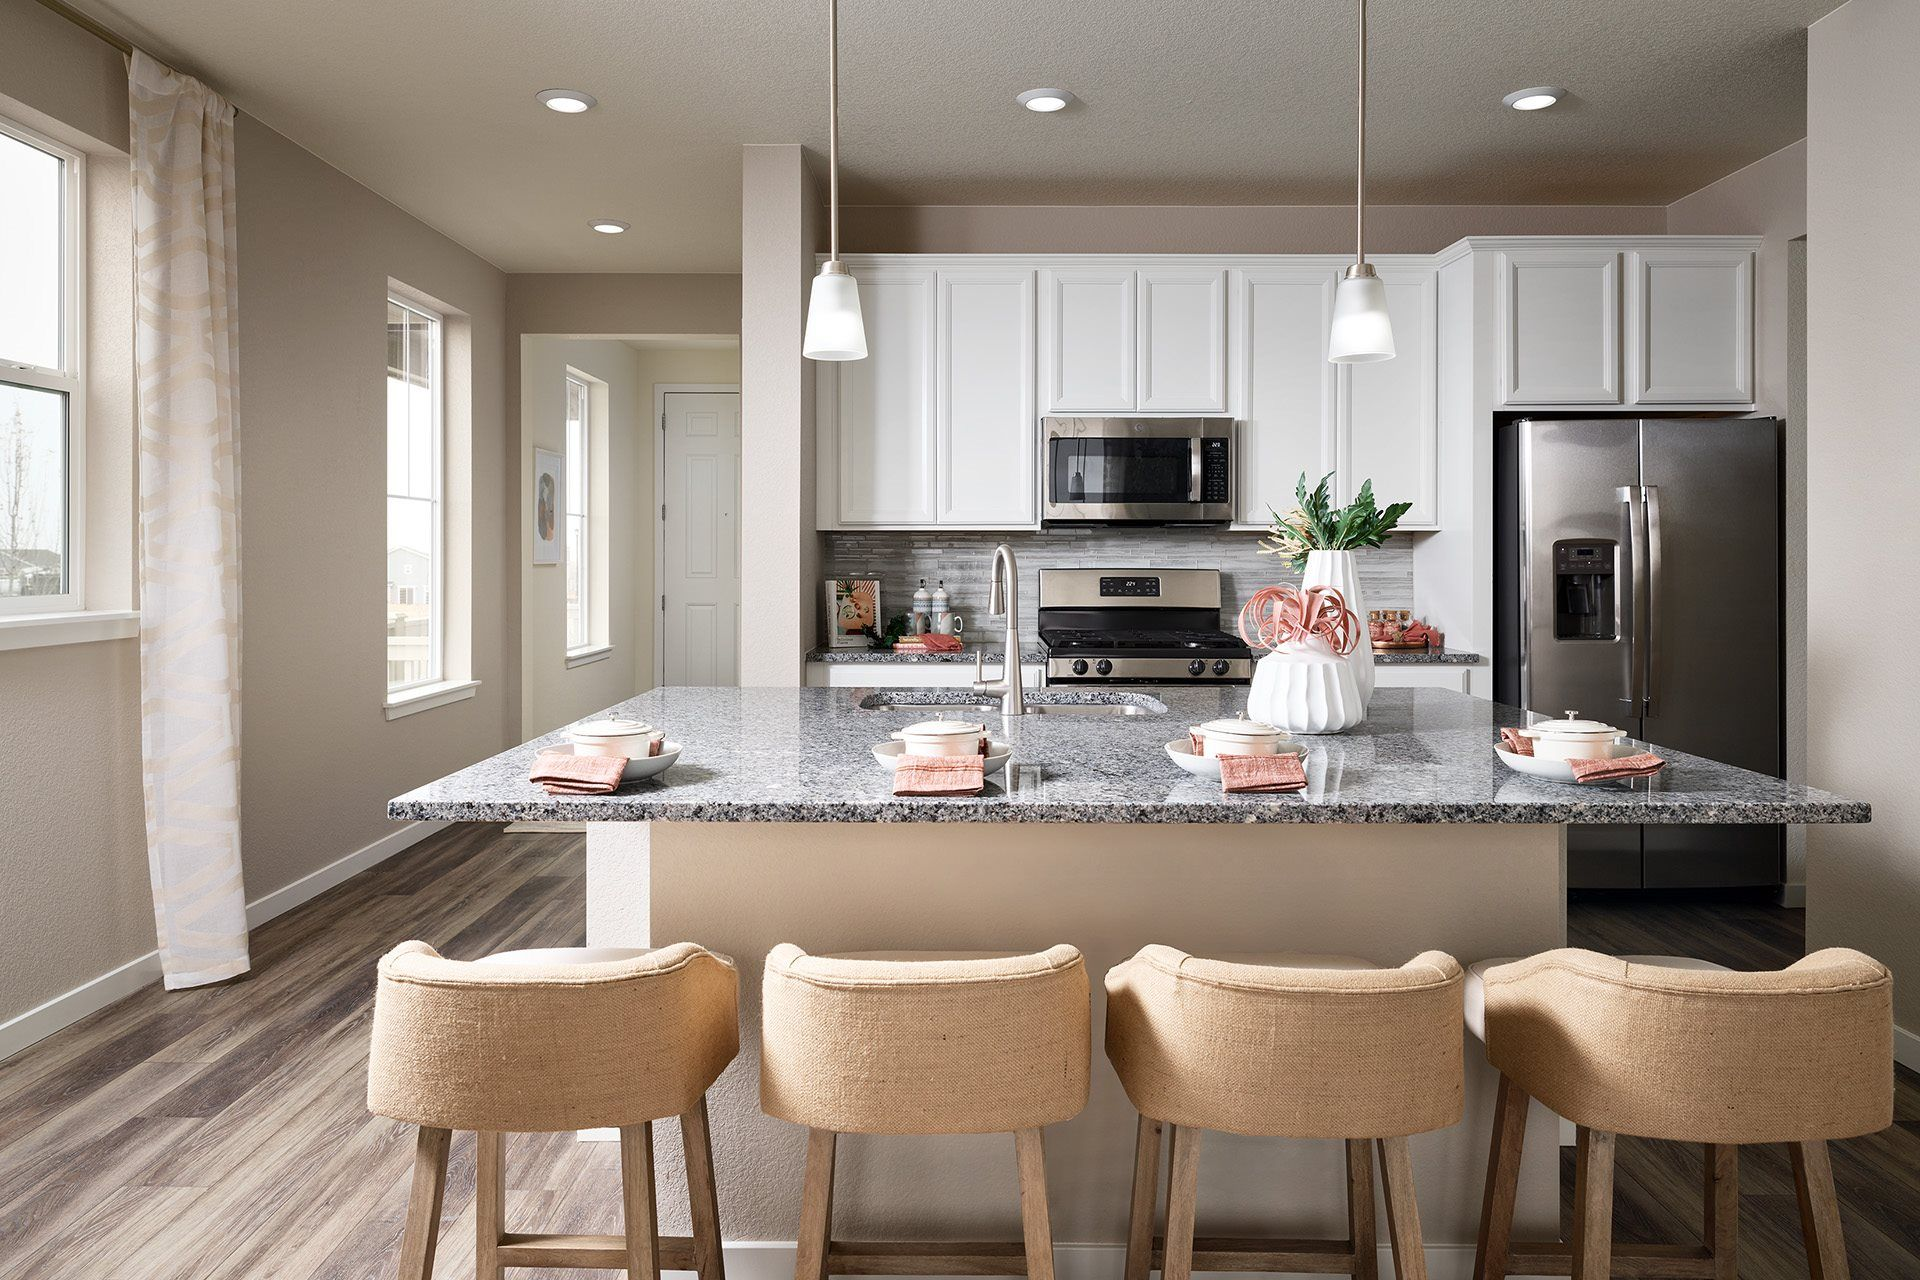 Kitchen featured in the Plateau By Lennar in Denver, CO